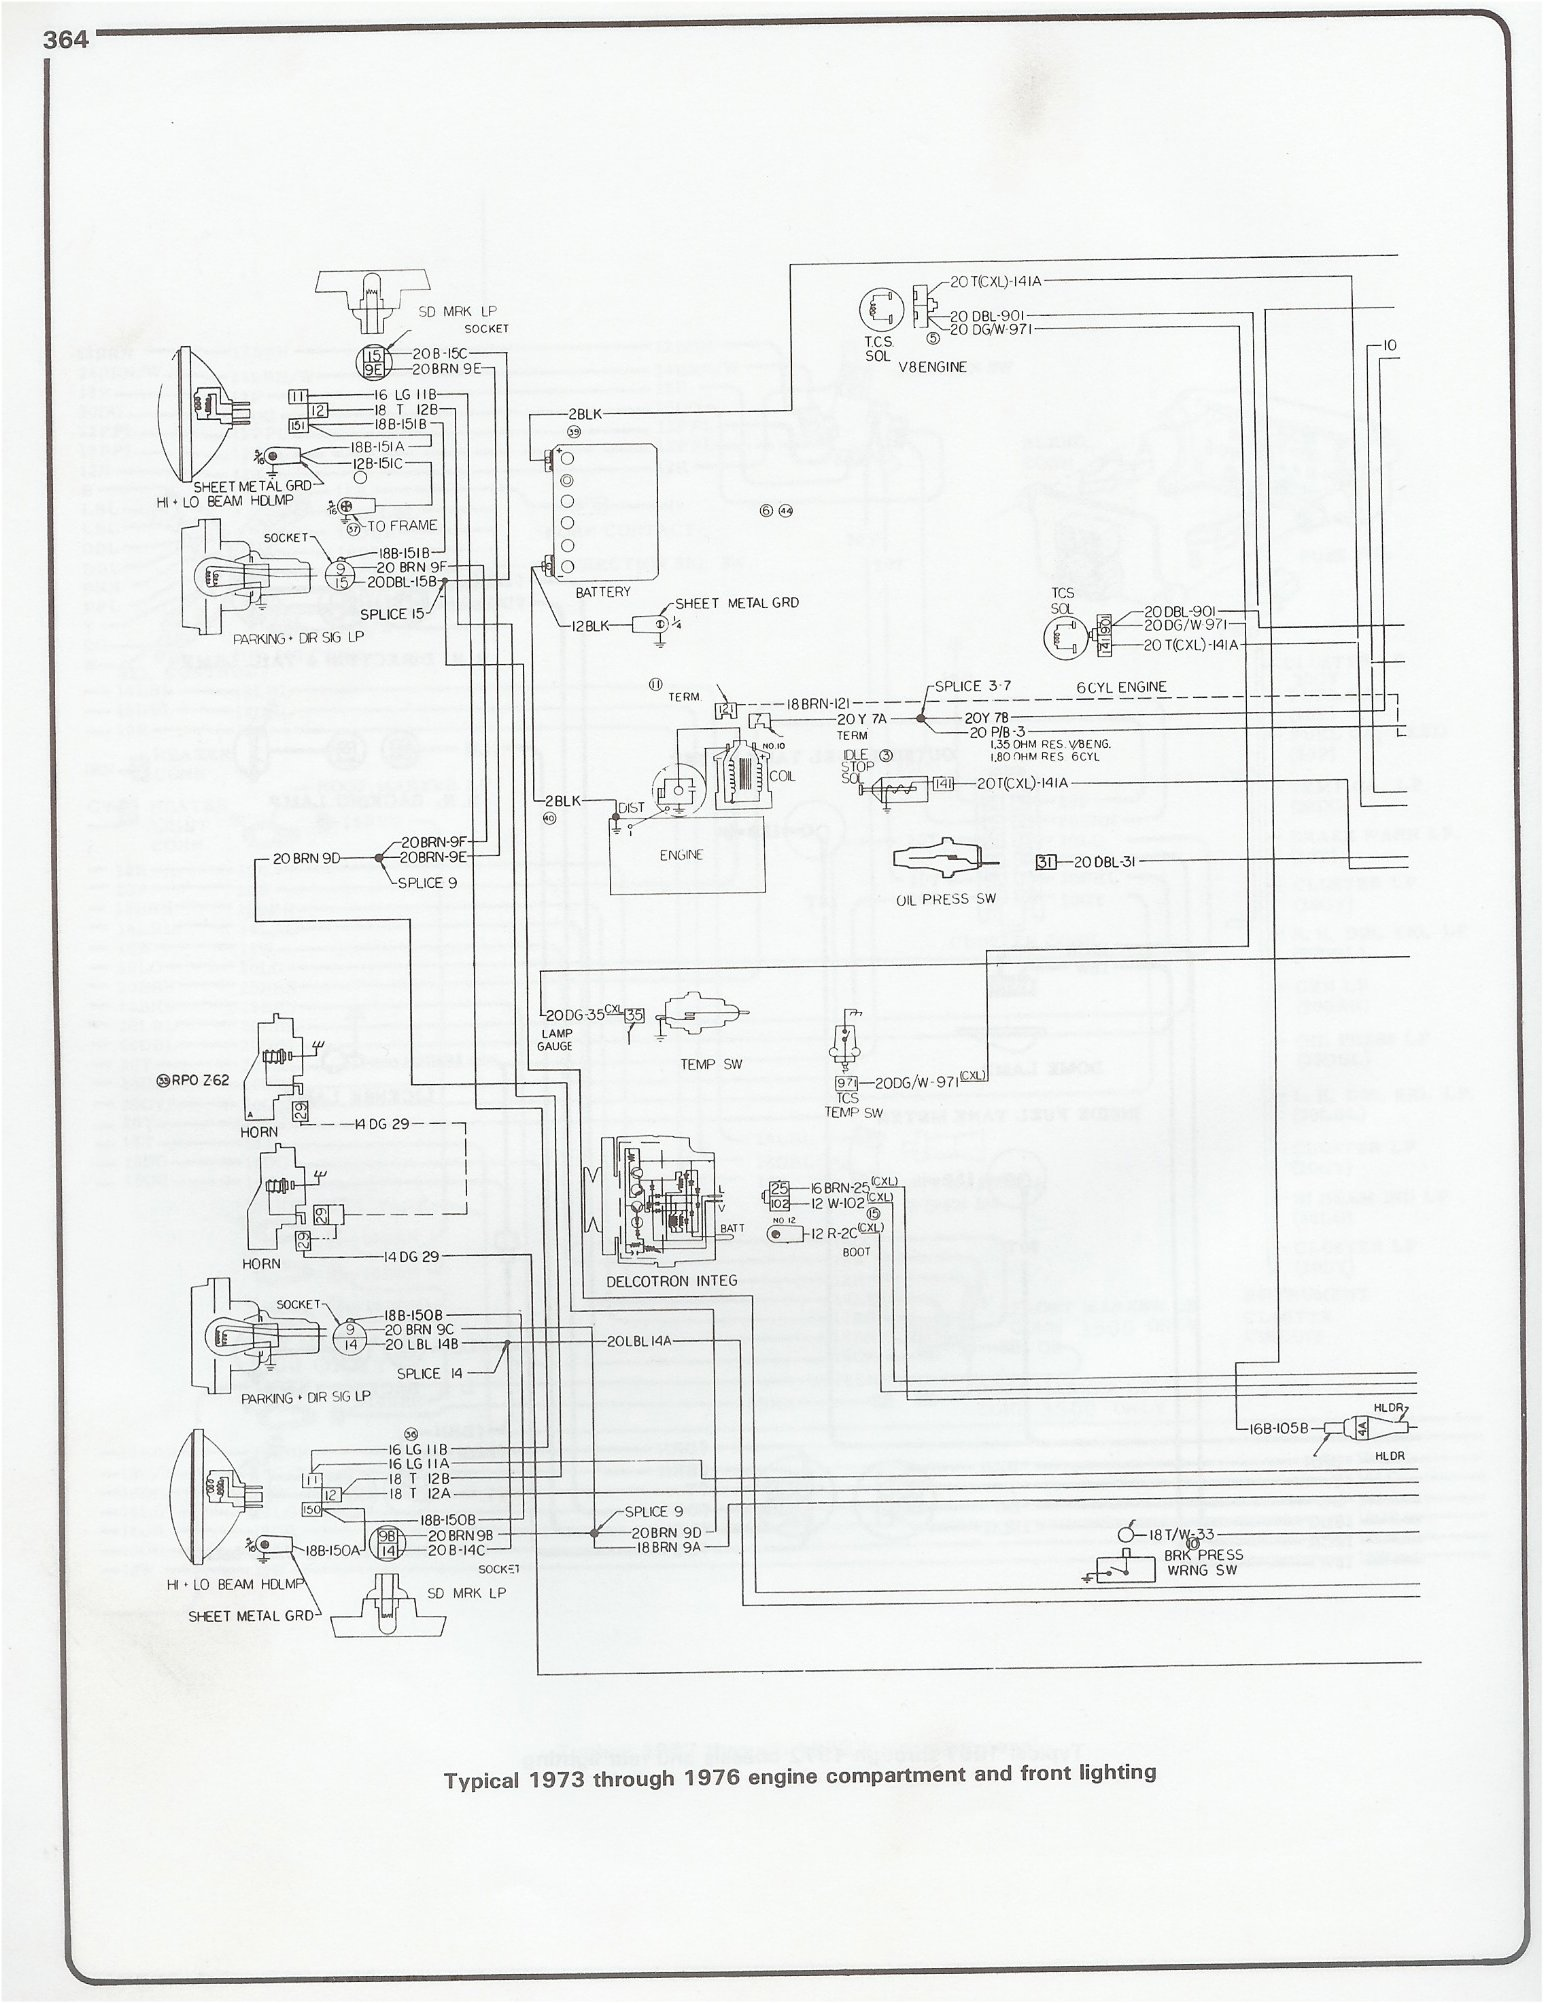 73 76_eng_frt_light complete 73 87 wiring diagrams 1984 chevy truck headlight wiring diagram at readyjetset.co